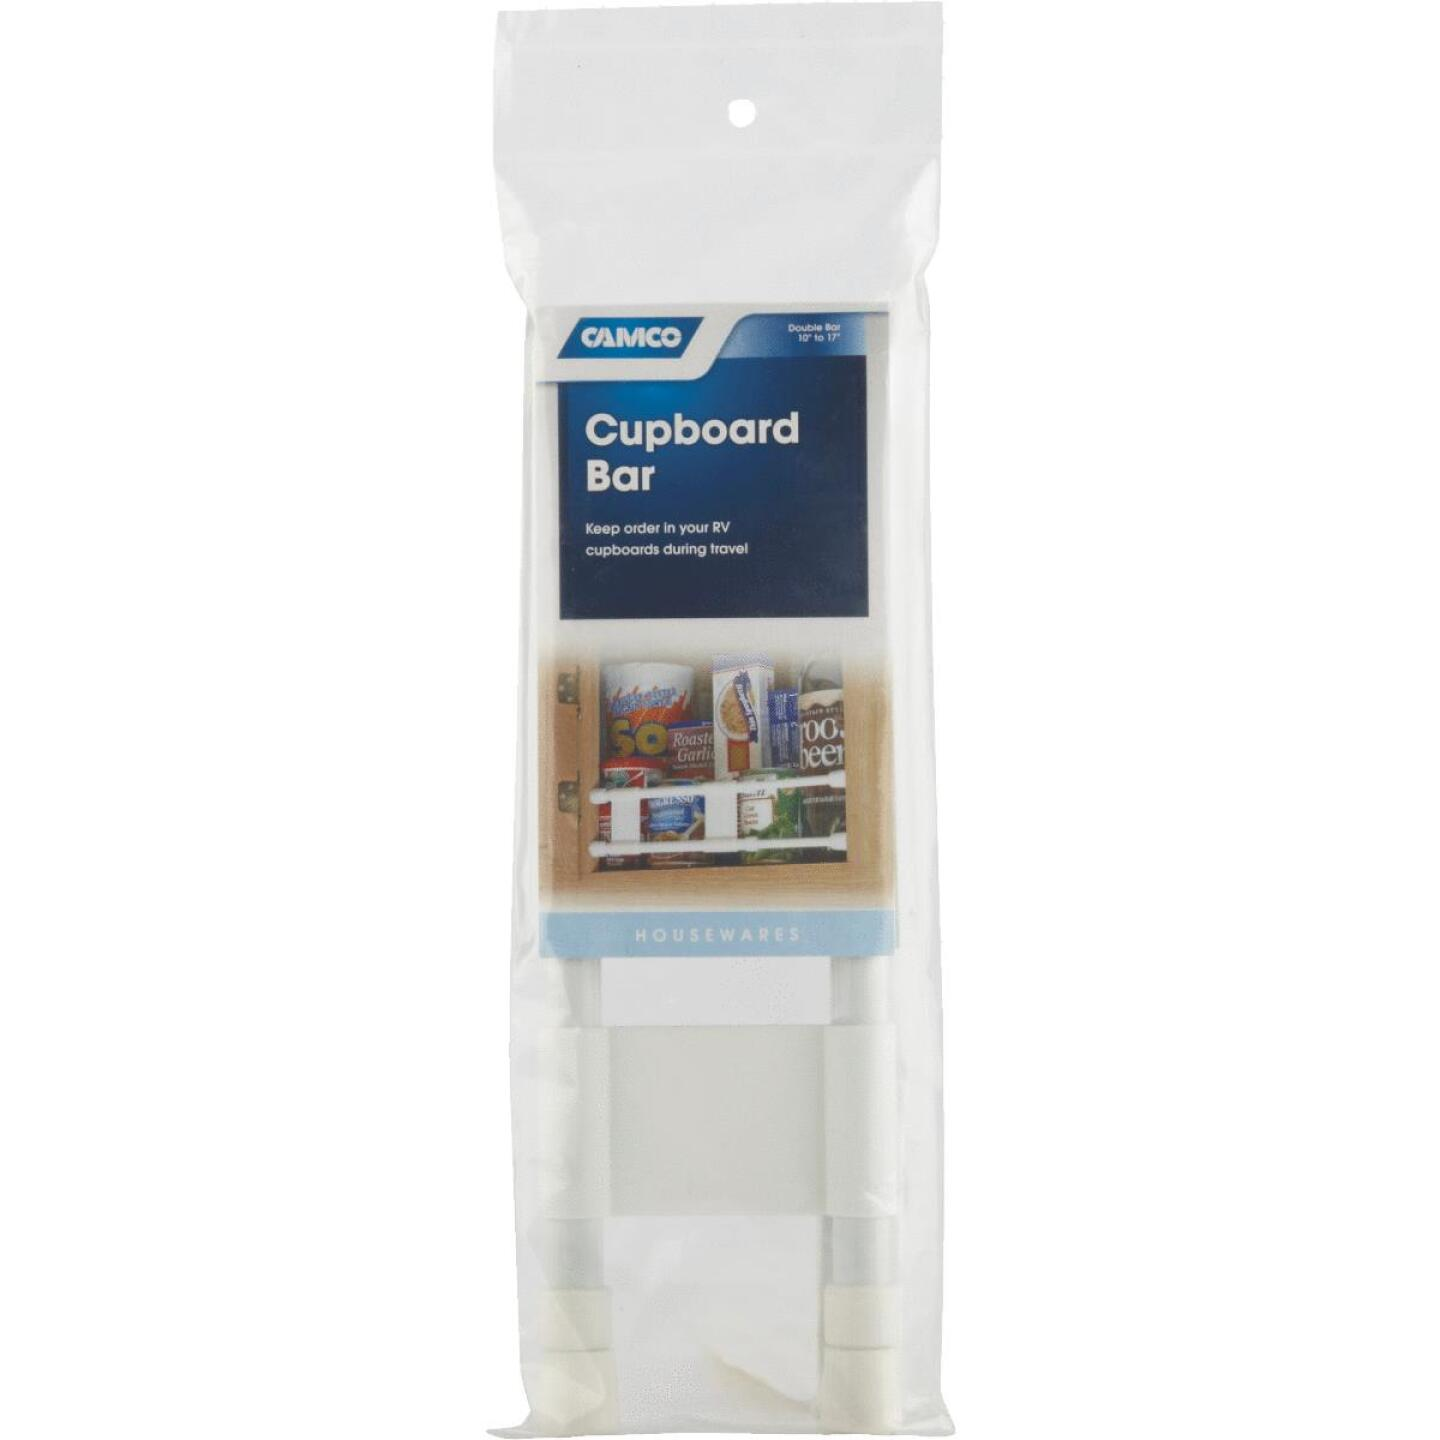 Camco Extends 10 In. to 17 In. White Cupboard RV Storage Bar Image 2